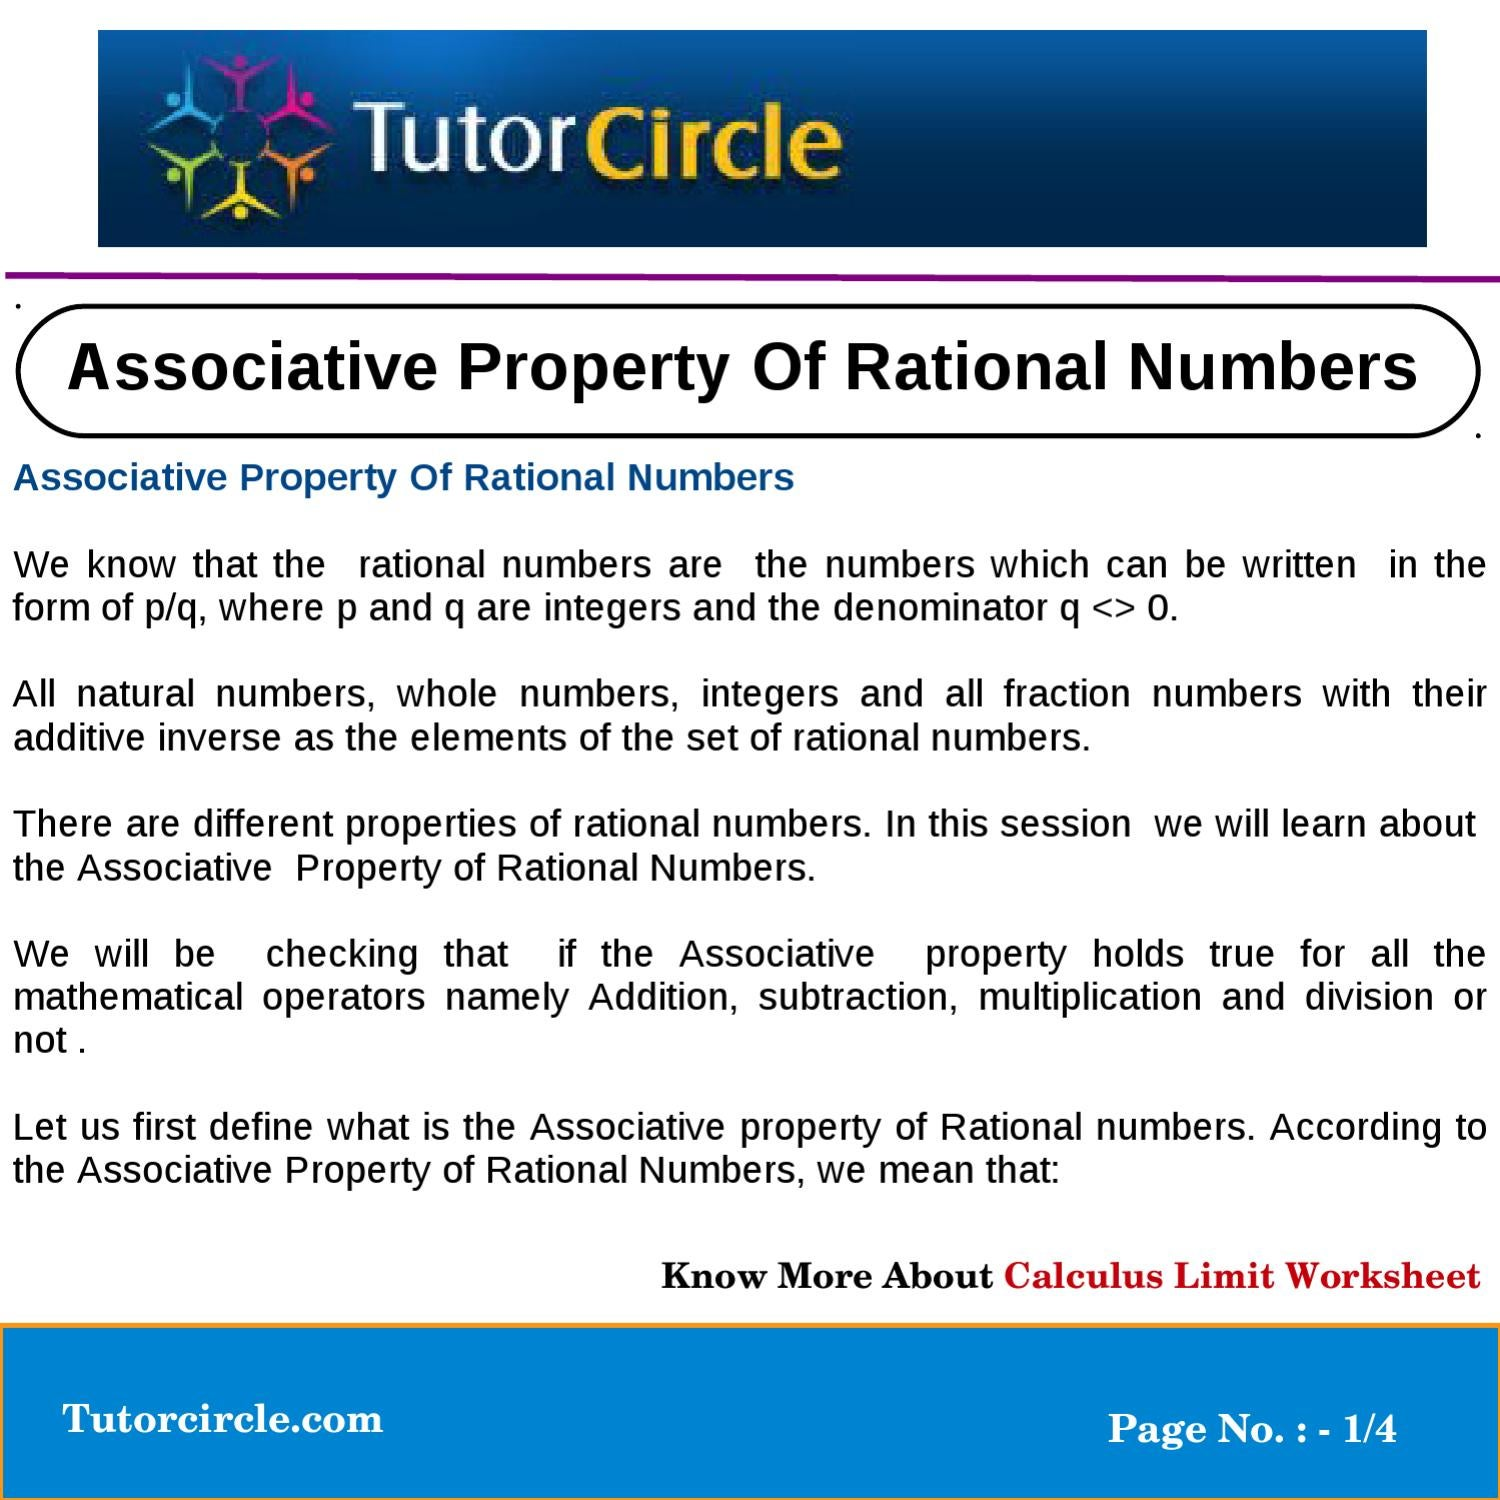 Associative Property Of Rational Numbers by tutorcircle team